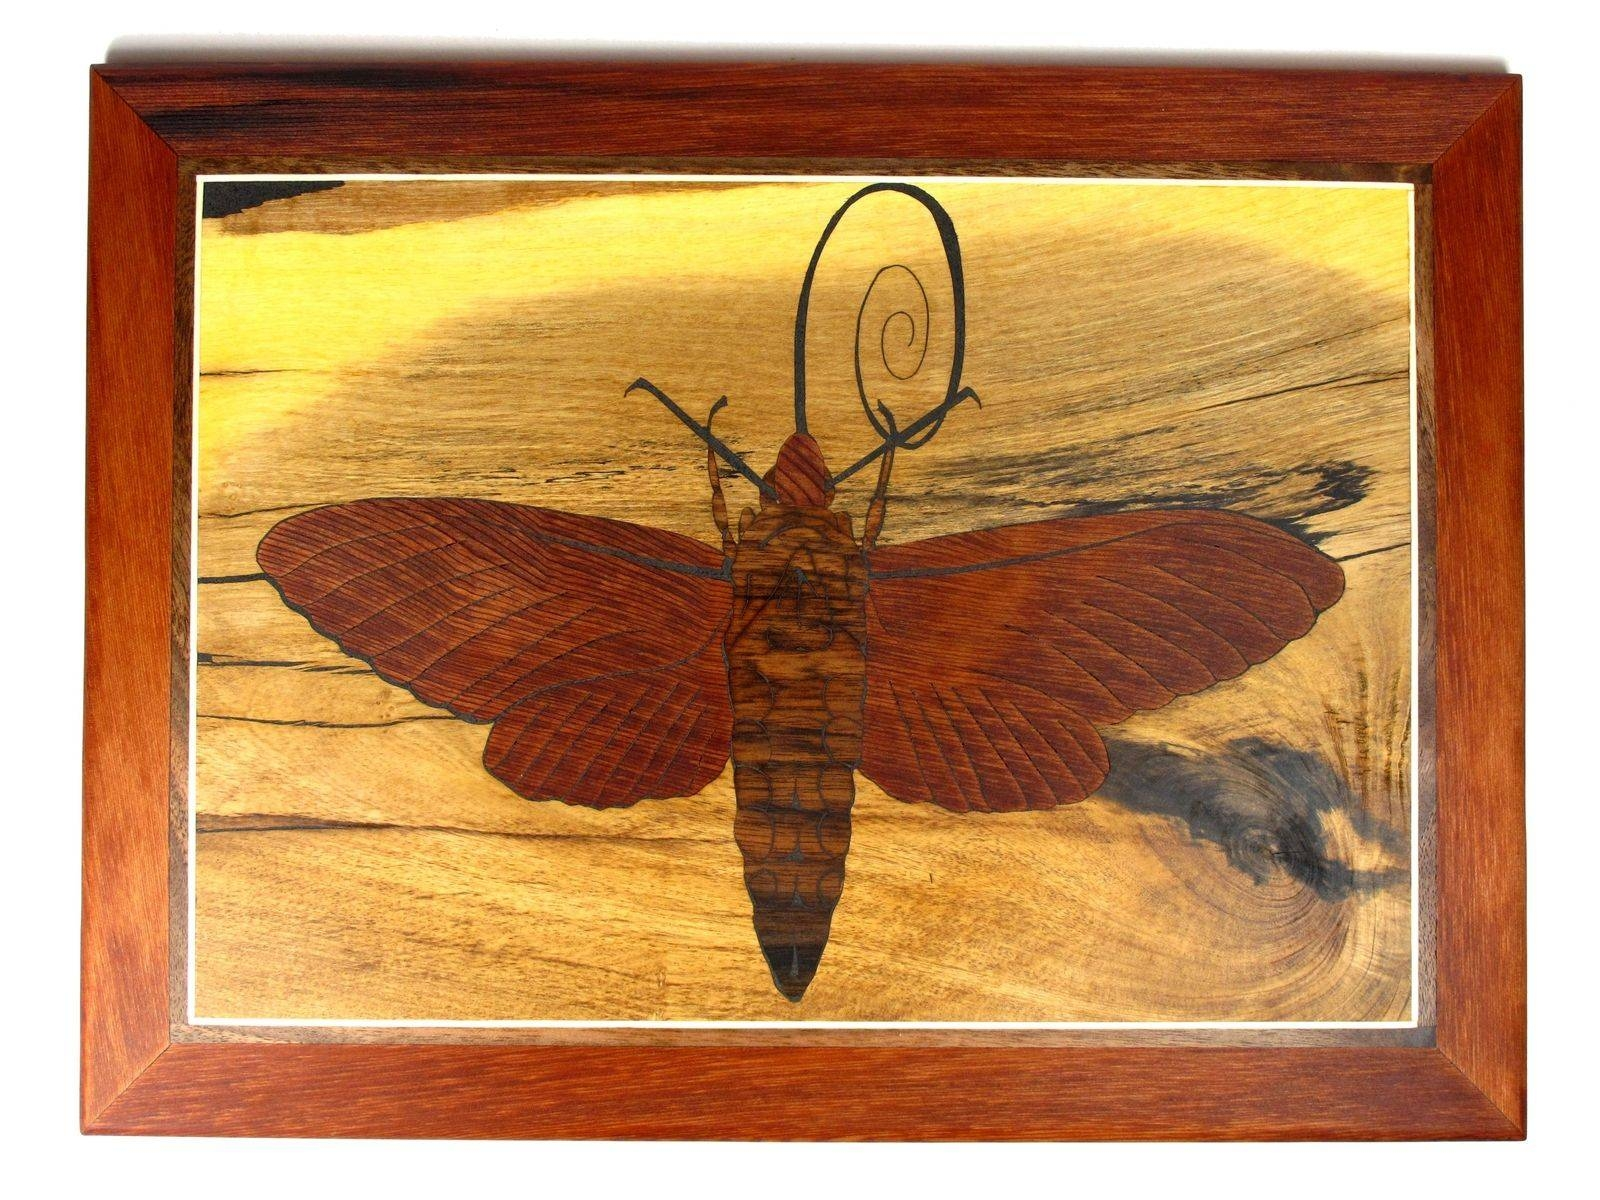 Hand Made Insect Wall Art In Reclaimed Woodsierra Woodcraft Pertaining To Most Recent Insect Wall Art (Gallery 12 of 30)